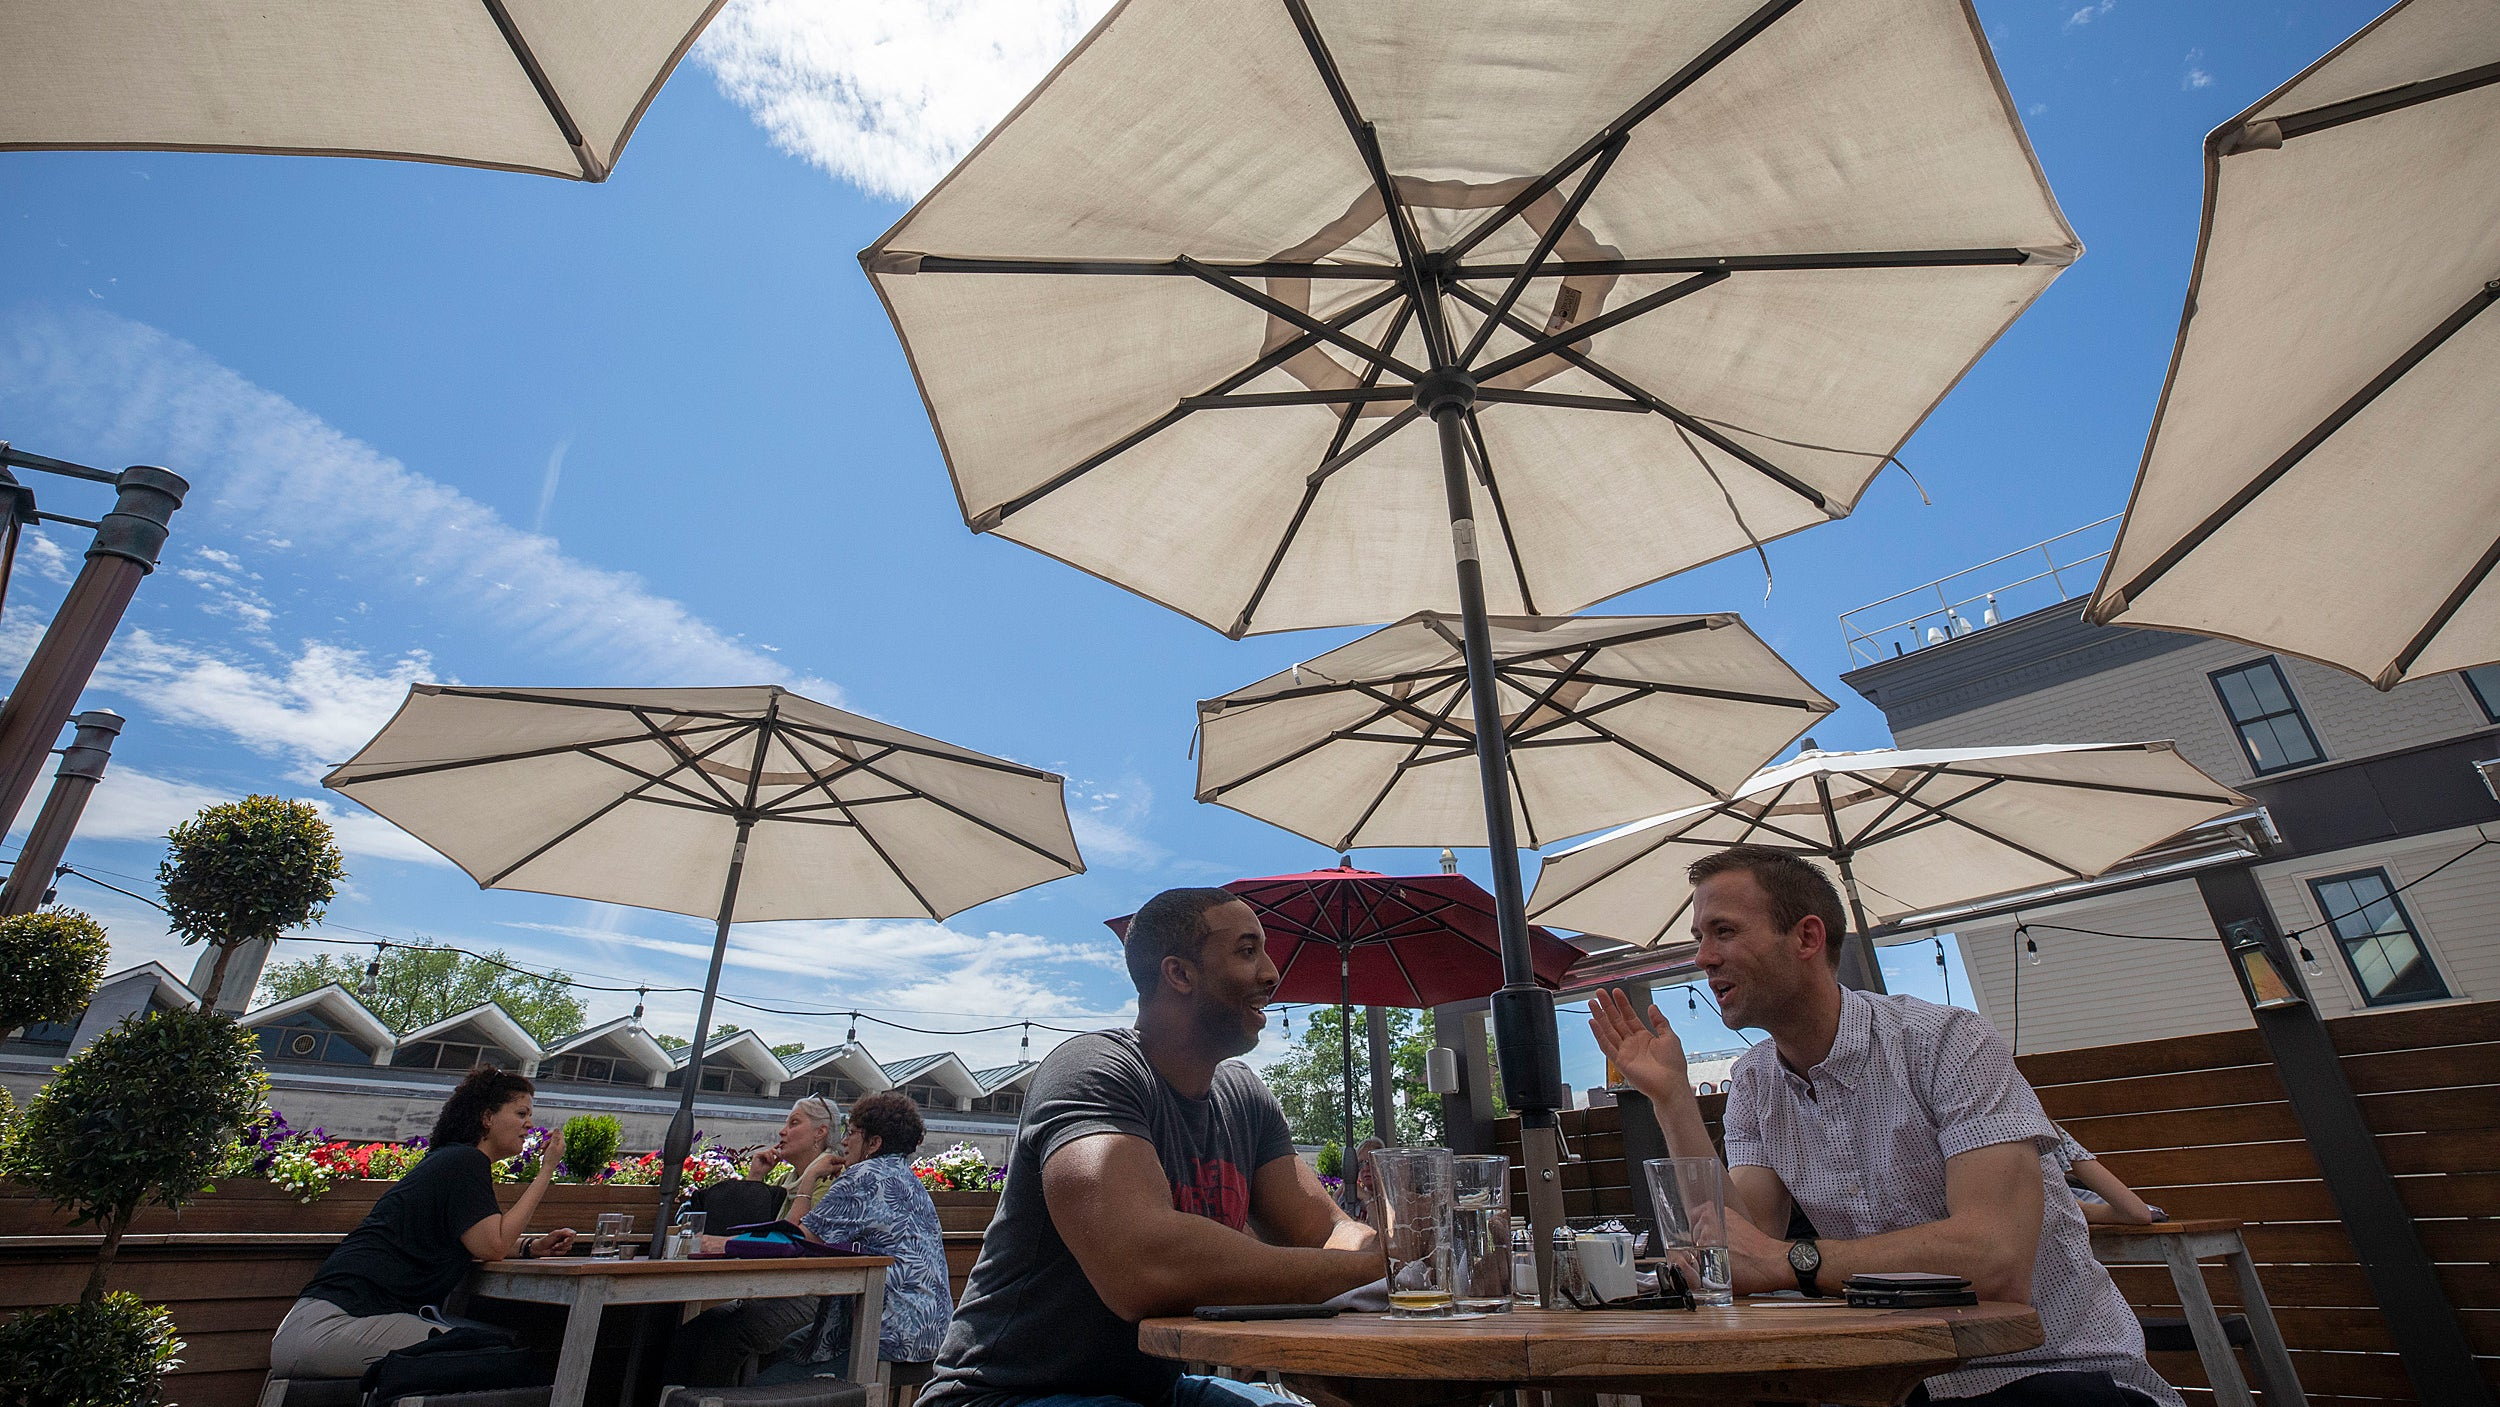 Suggestions for al fresco dining and drinking around Harvard Square